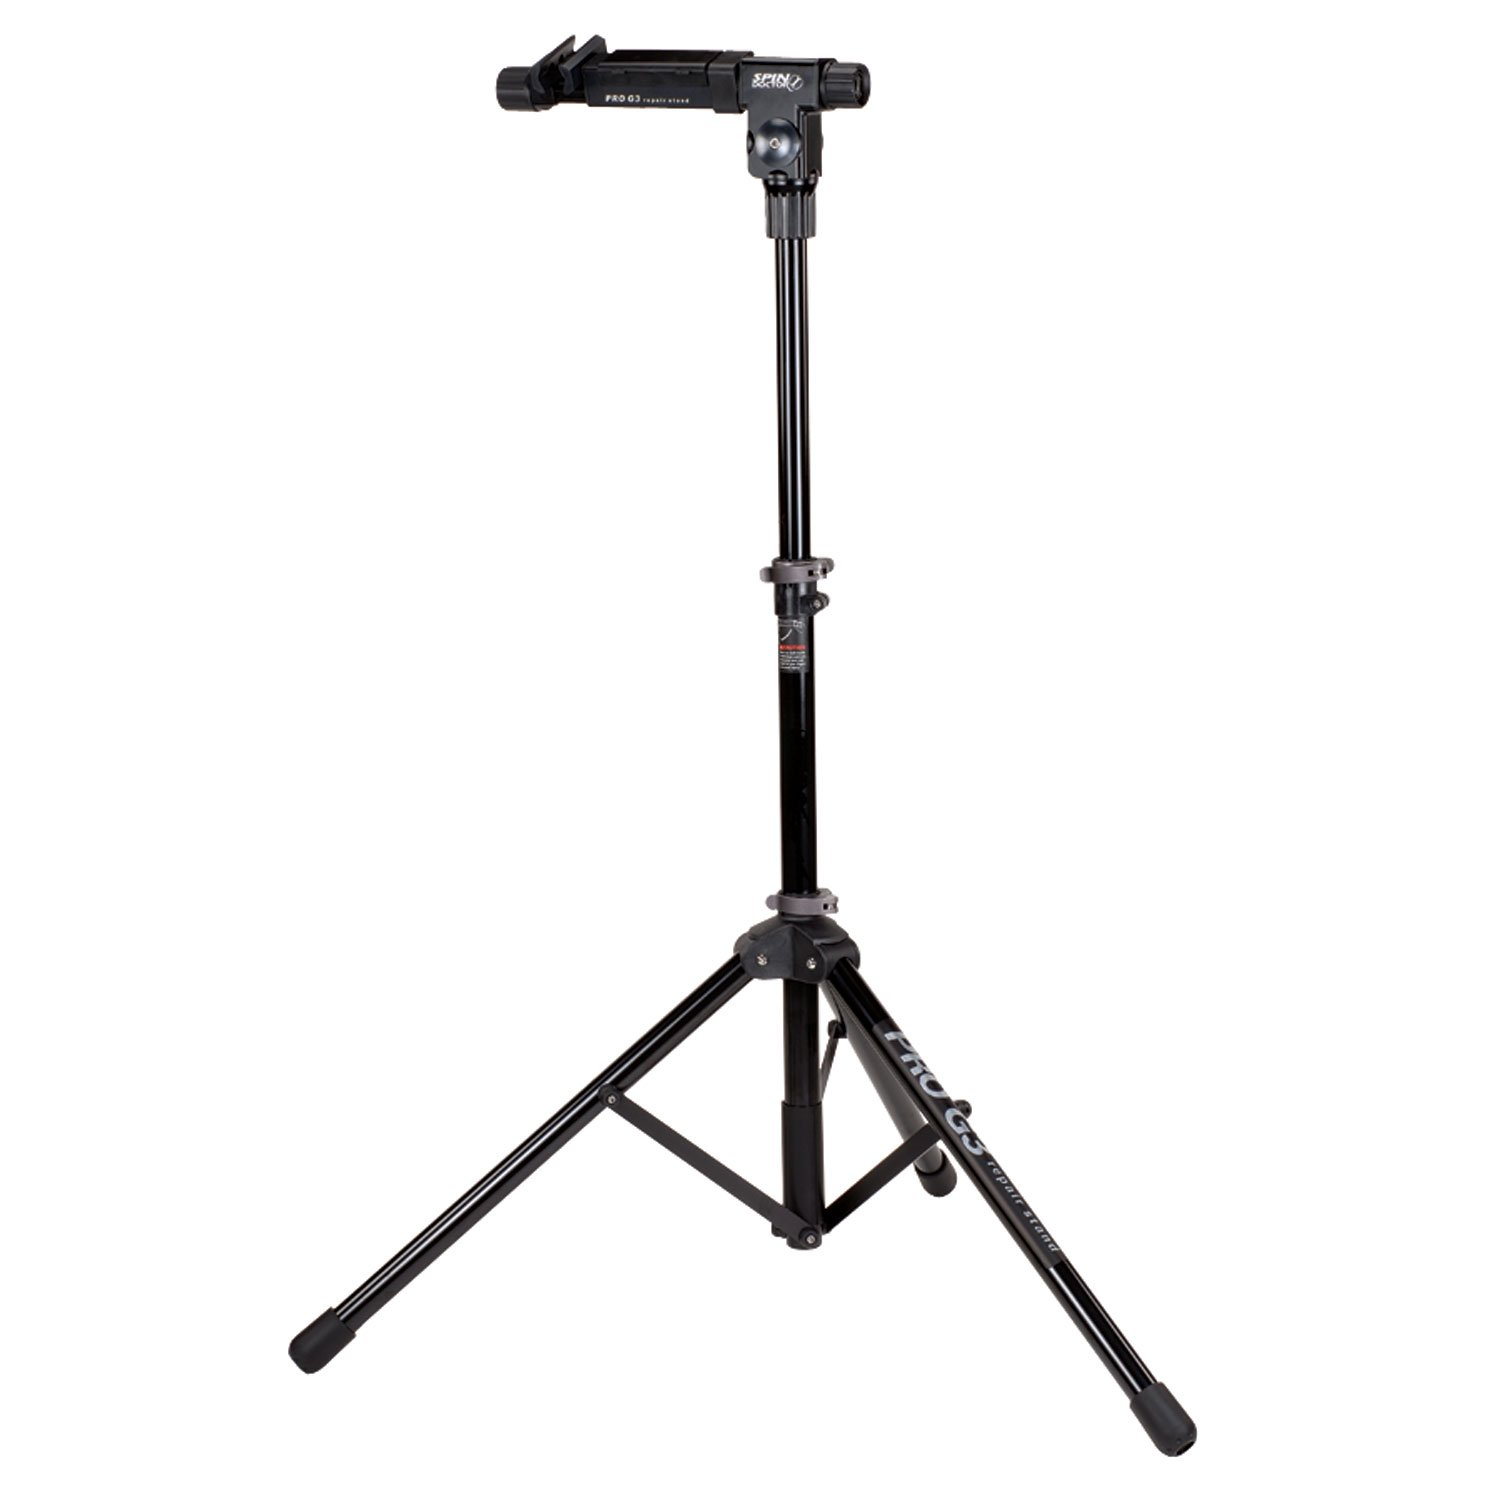 Spin Doctor Pro G3 Bicycle Work Stand